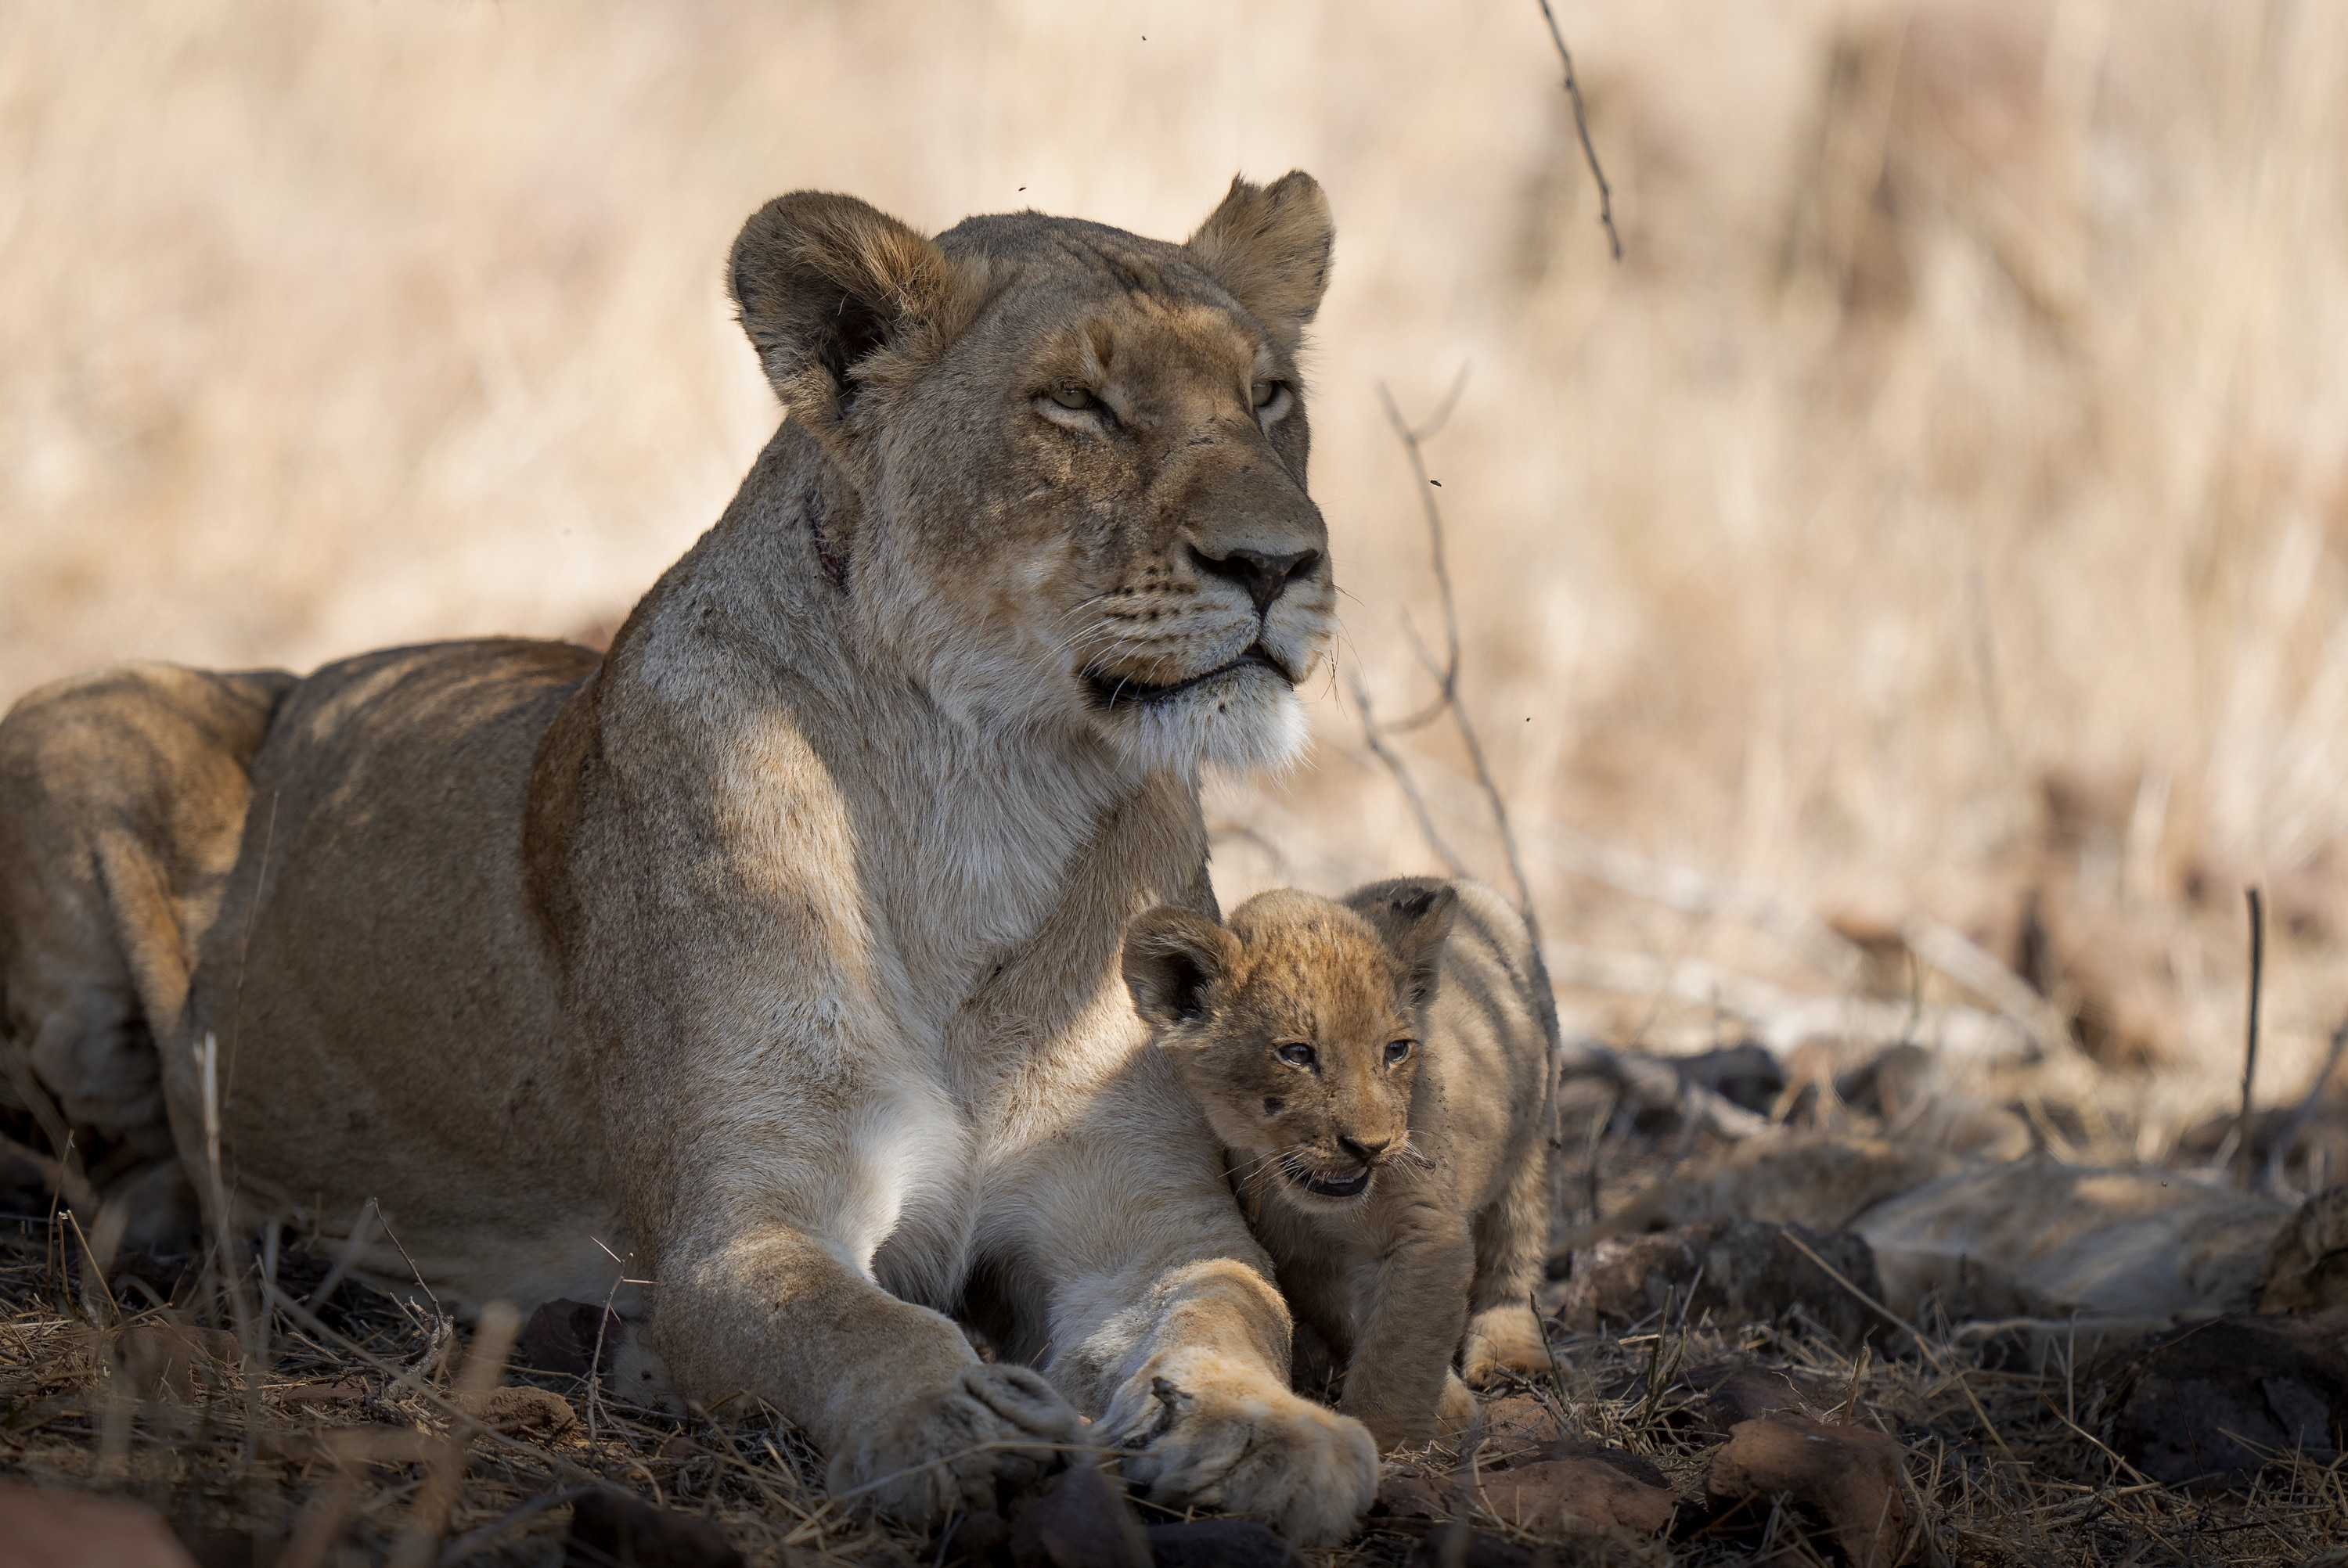 Malika with cub Issa. (National Geographic for Disney+/Russell MacLaughlin)